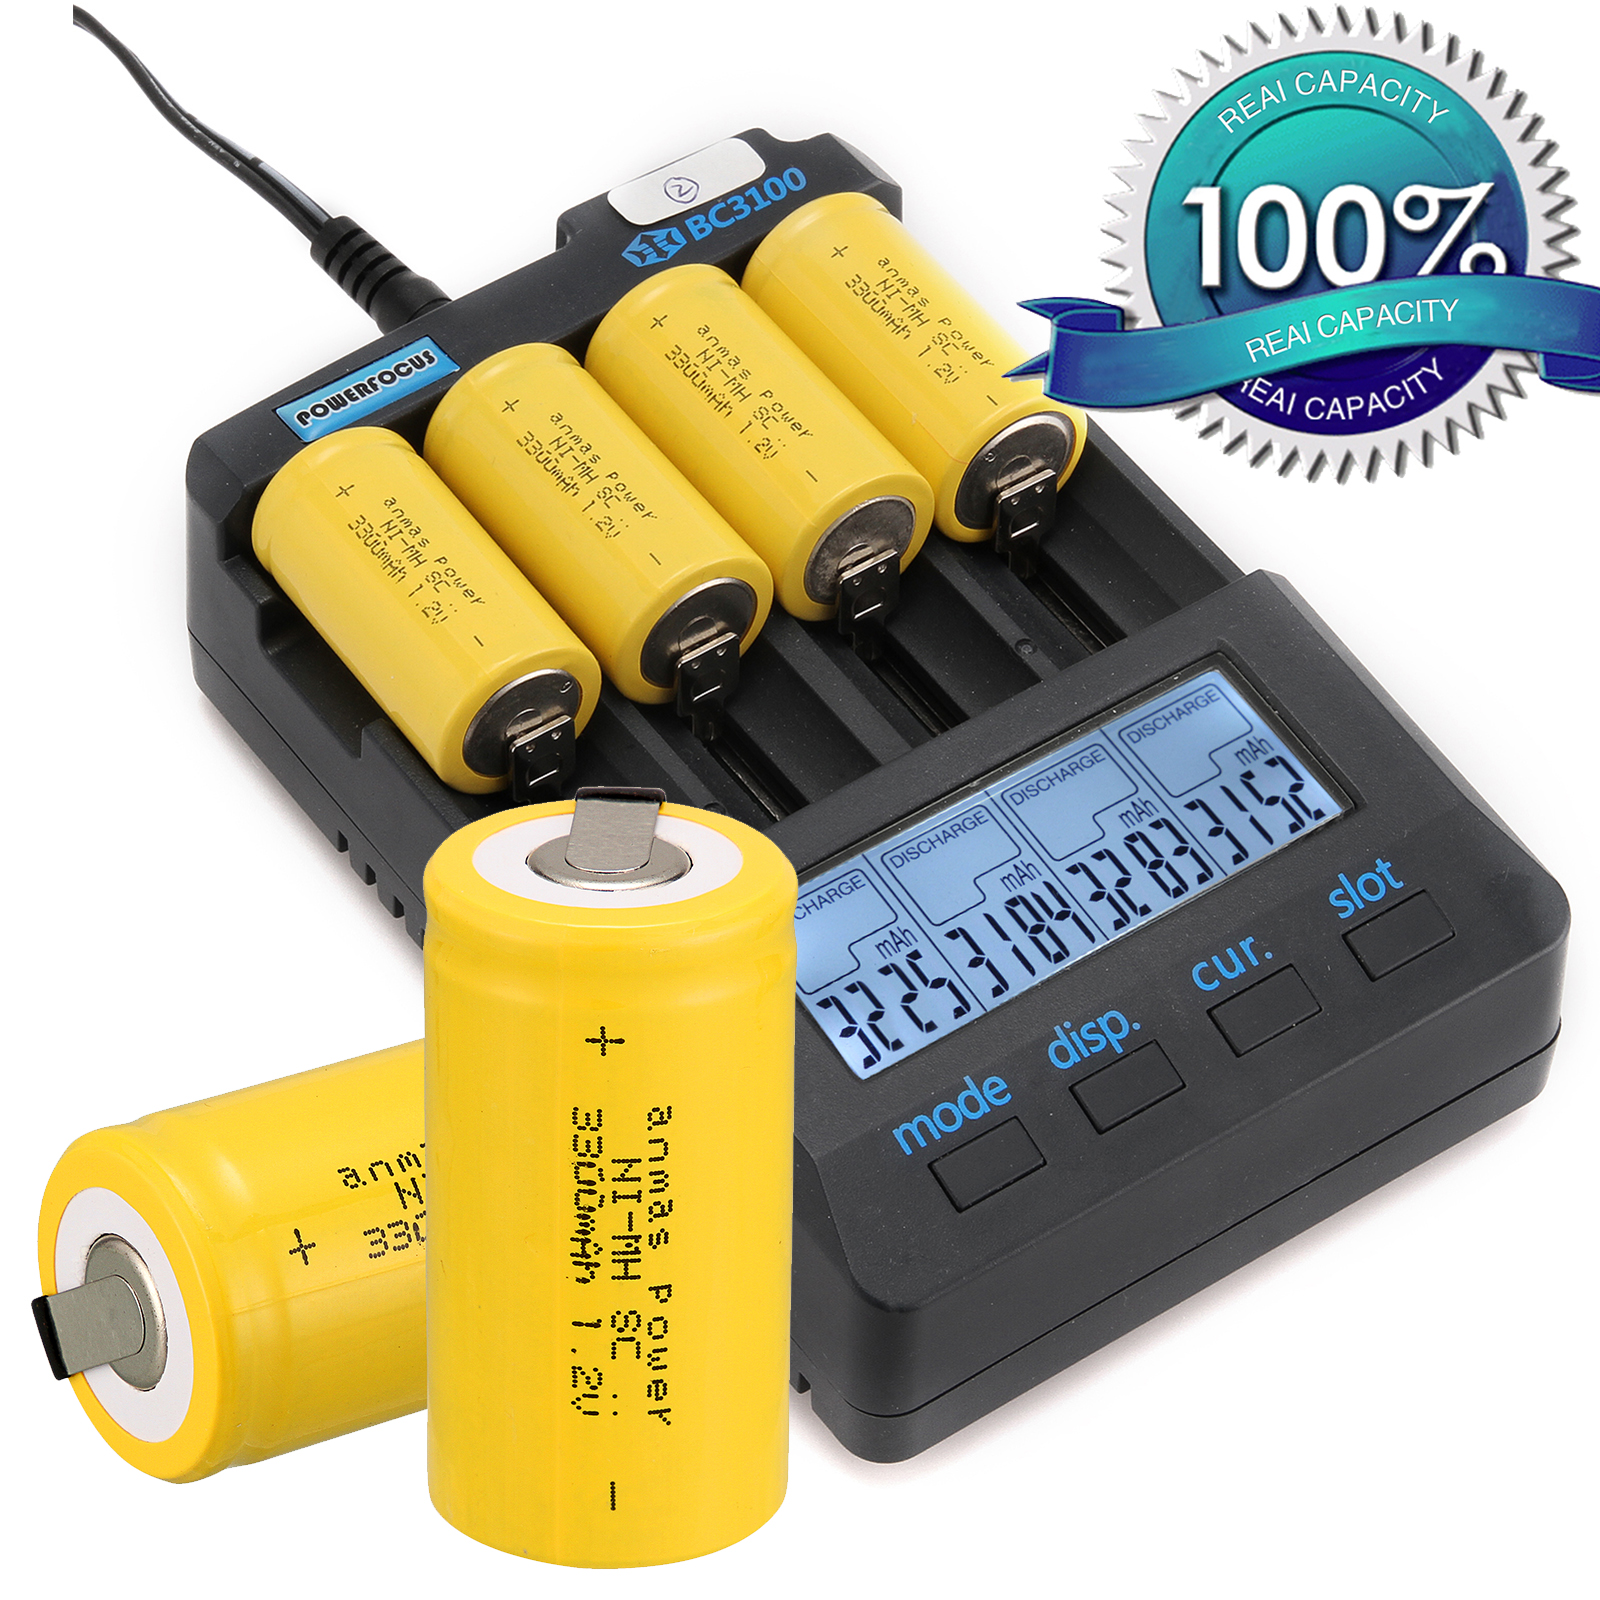 2/4/8PCS Anmas Power 1.2V 3300mAh Ni-MH Sub C SC Batteries Rechargeable Battery 1.2 v NiMH Battery with tab Yellow image